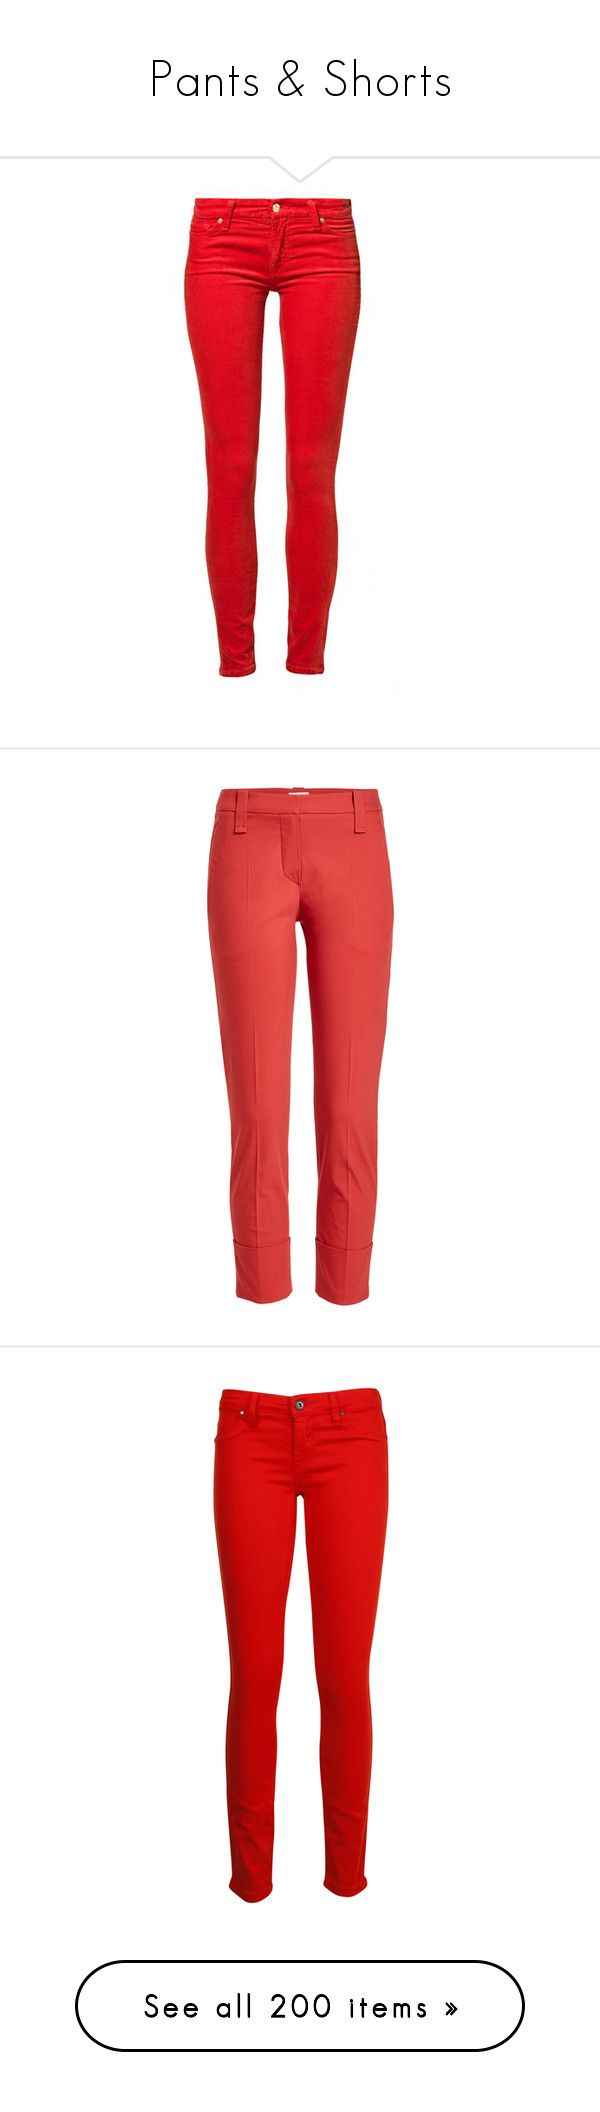 """Pants & Shorts"" by canadian-necromancer ❤ liked on Polyvore featuring pants, jeans, bottoms, calças, pantalones, red, women's trousers, 7 for all mankind, brunello cucinelli and tapered trousers"